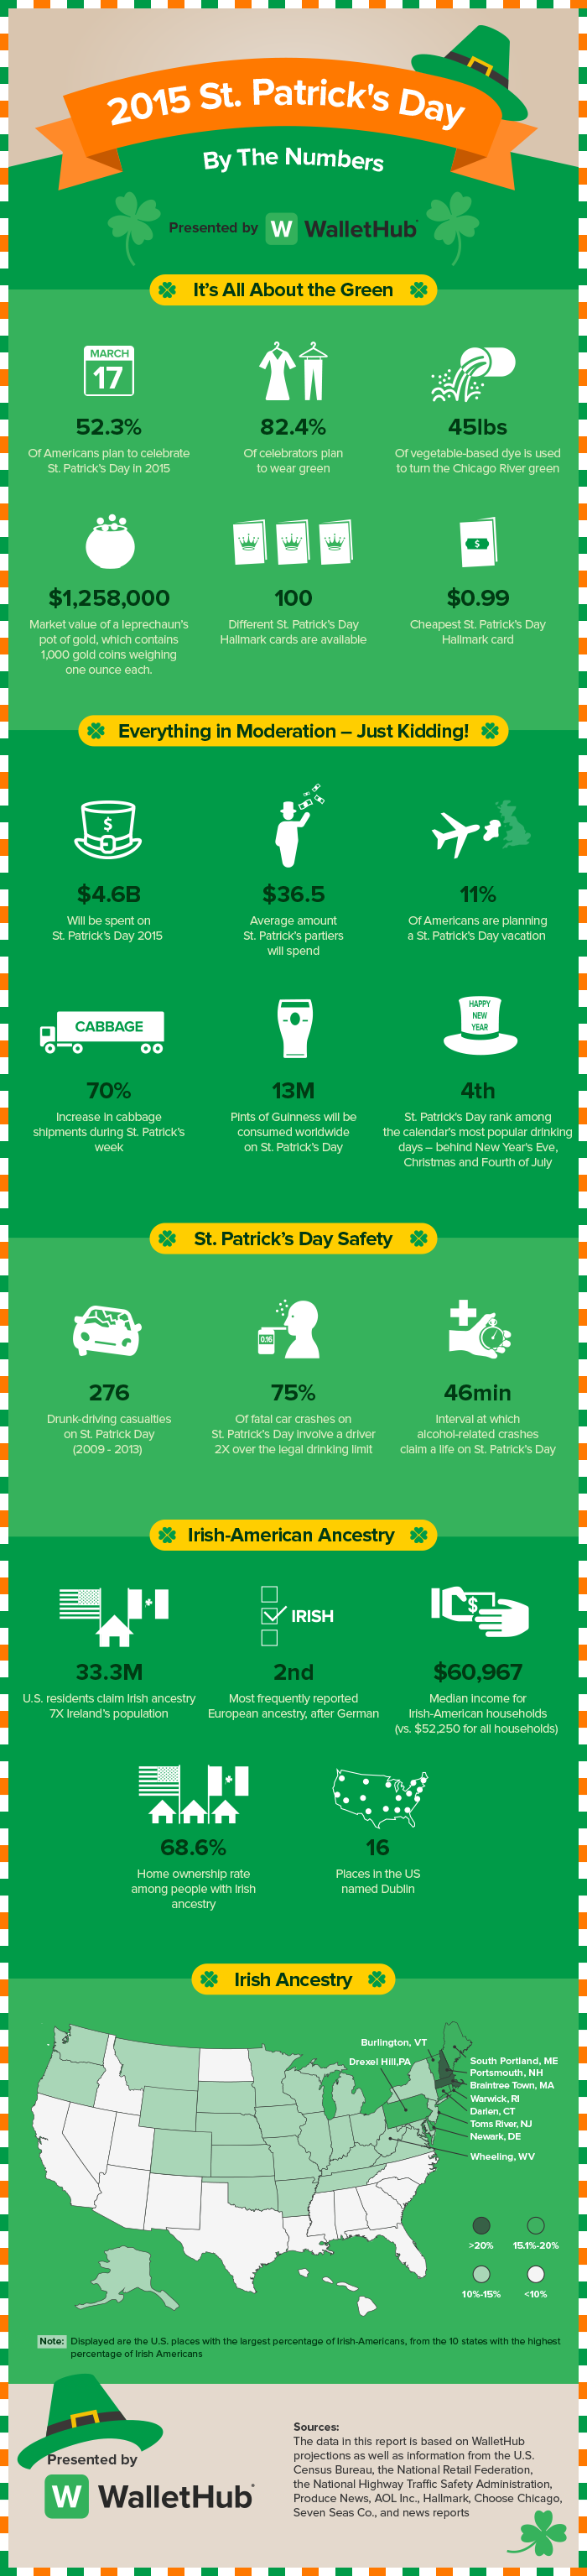 St.-Patrick's-Day-by-the-Numbers